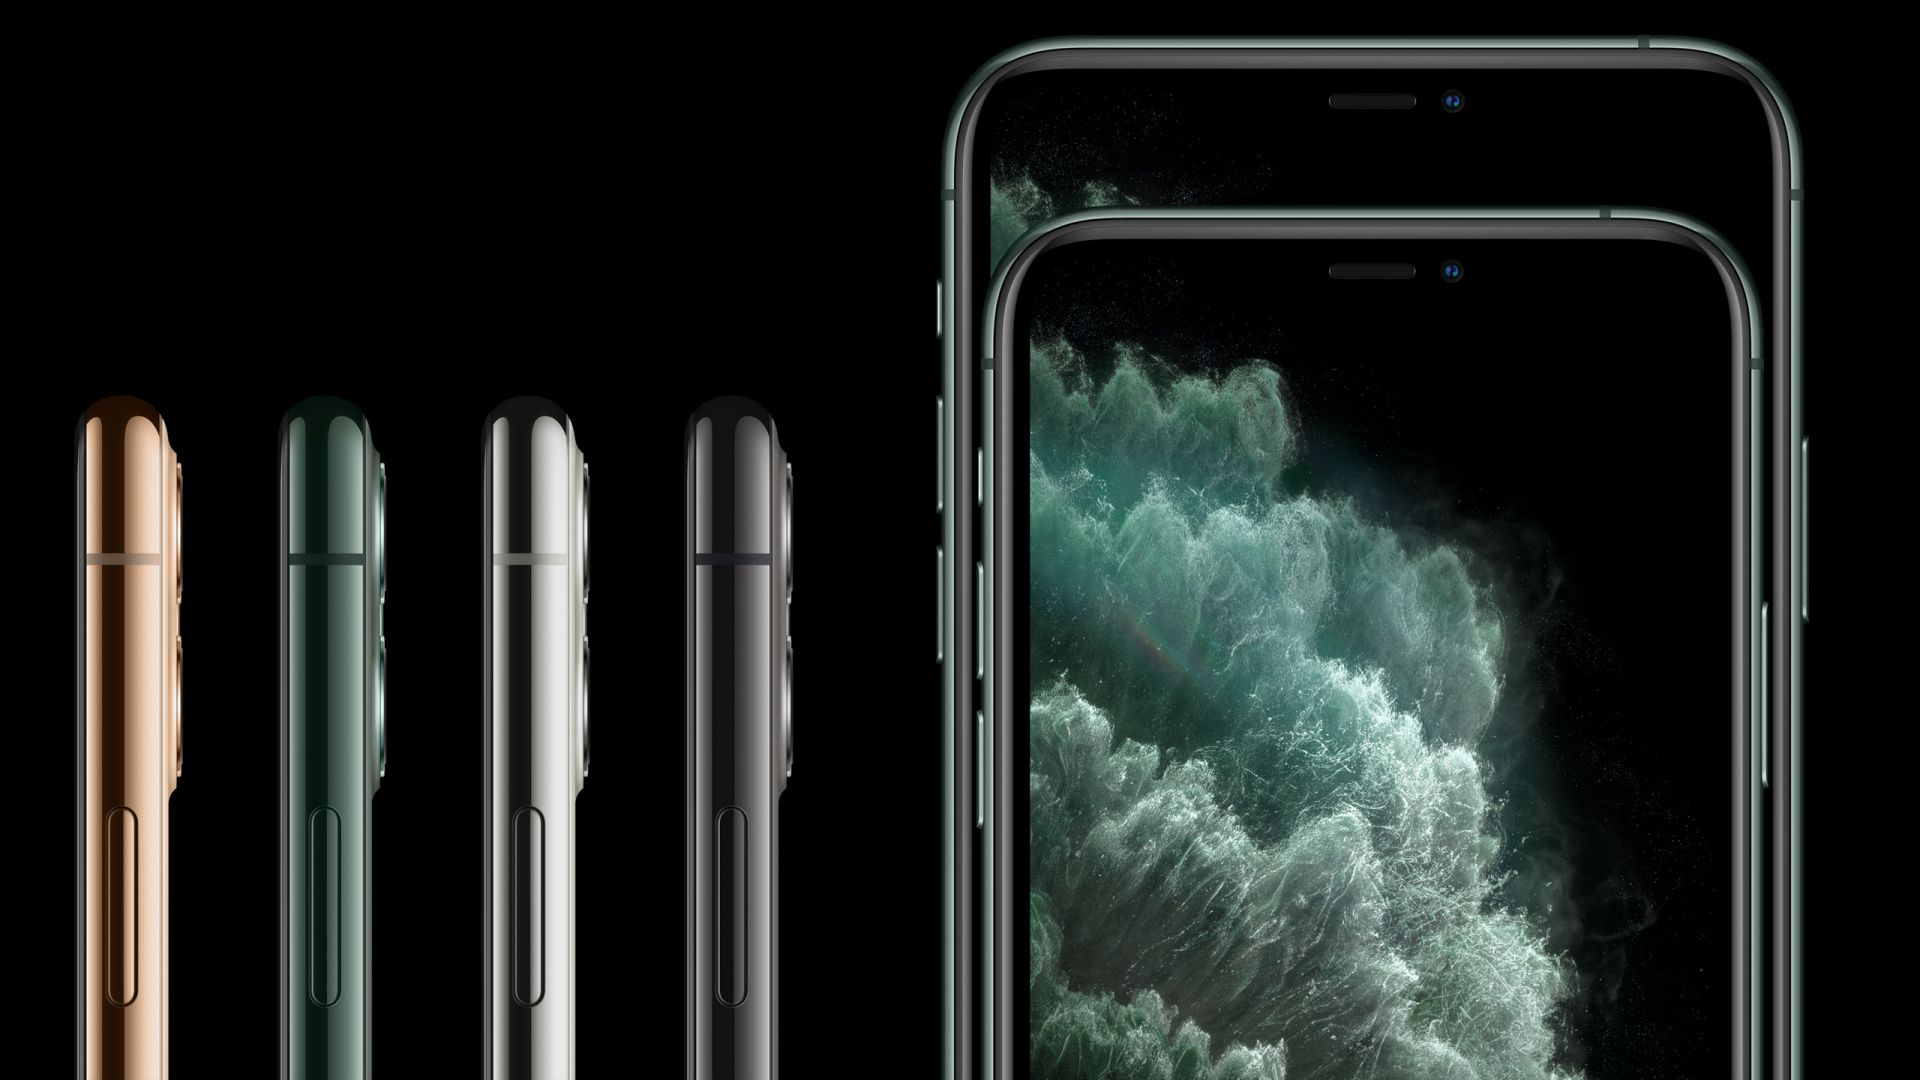 iPhone 11 Pro, iPhone 11 Pro Max, Apple September 2019 Event (horizontal)